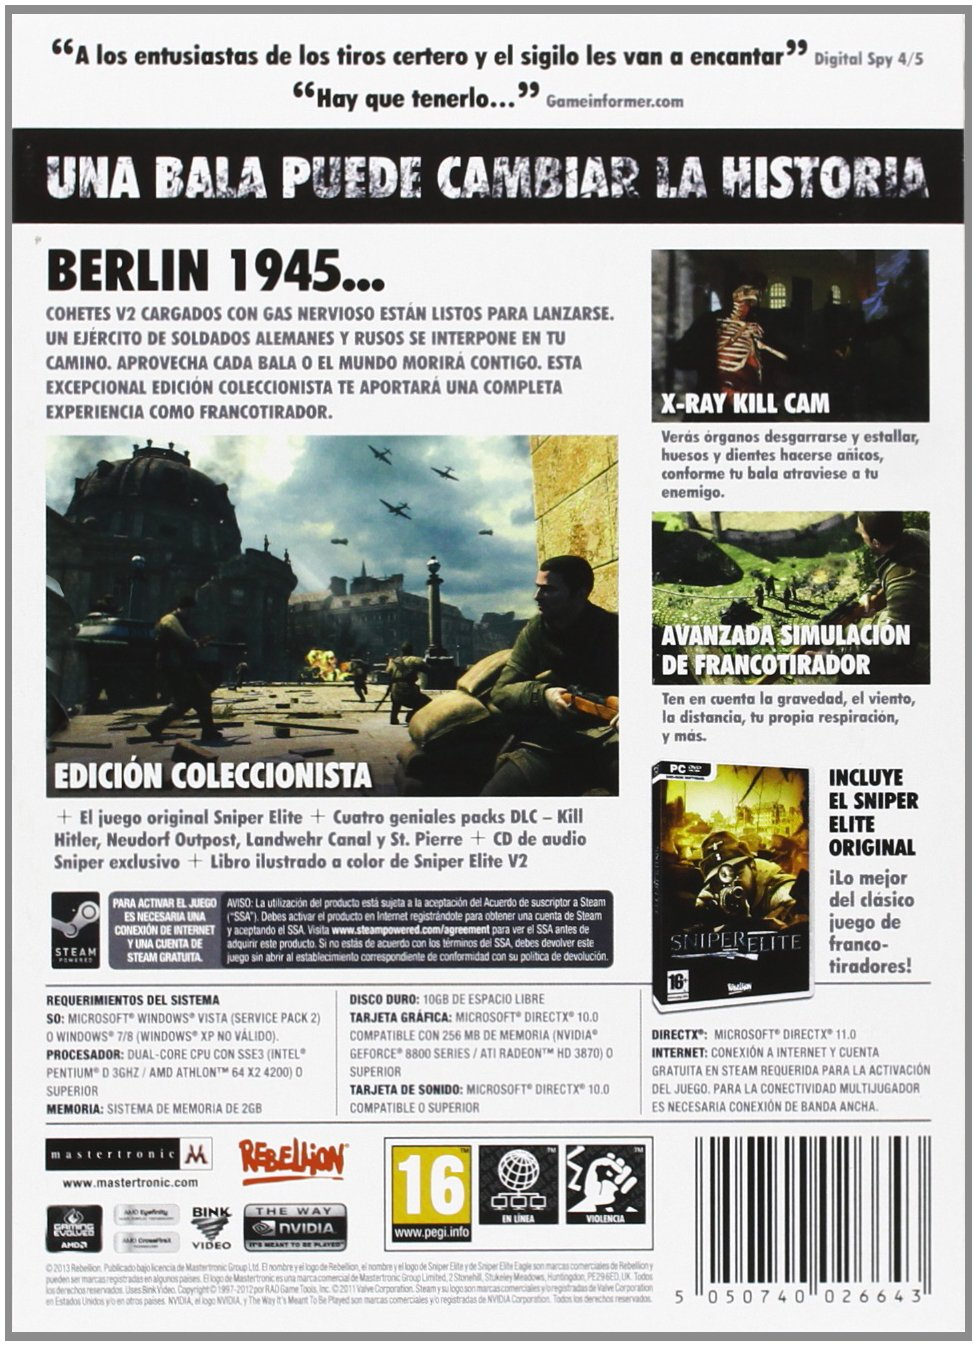 Sniper Elite V2: sony playstation3: Amazon.es: Videojuegos